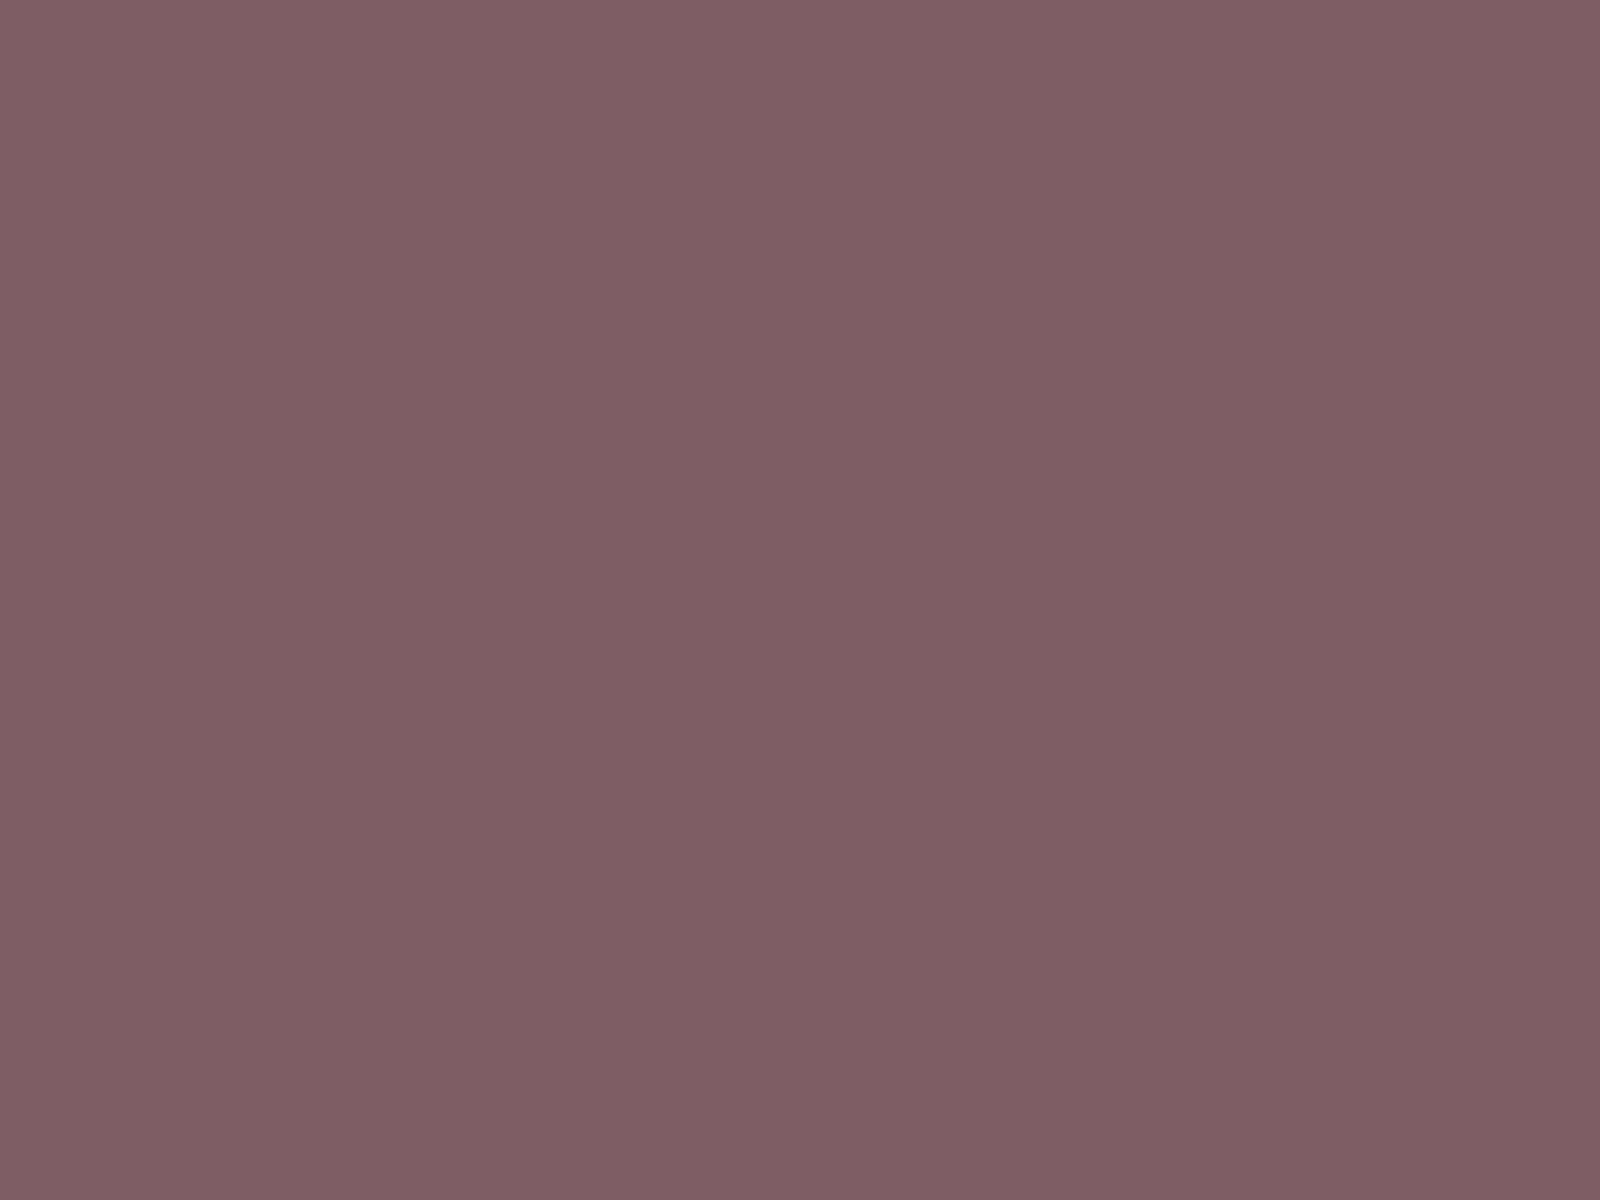 1600x1200 Deep Taupe Solid Color Background